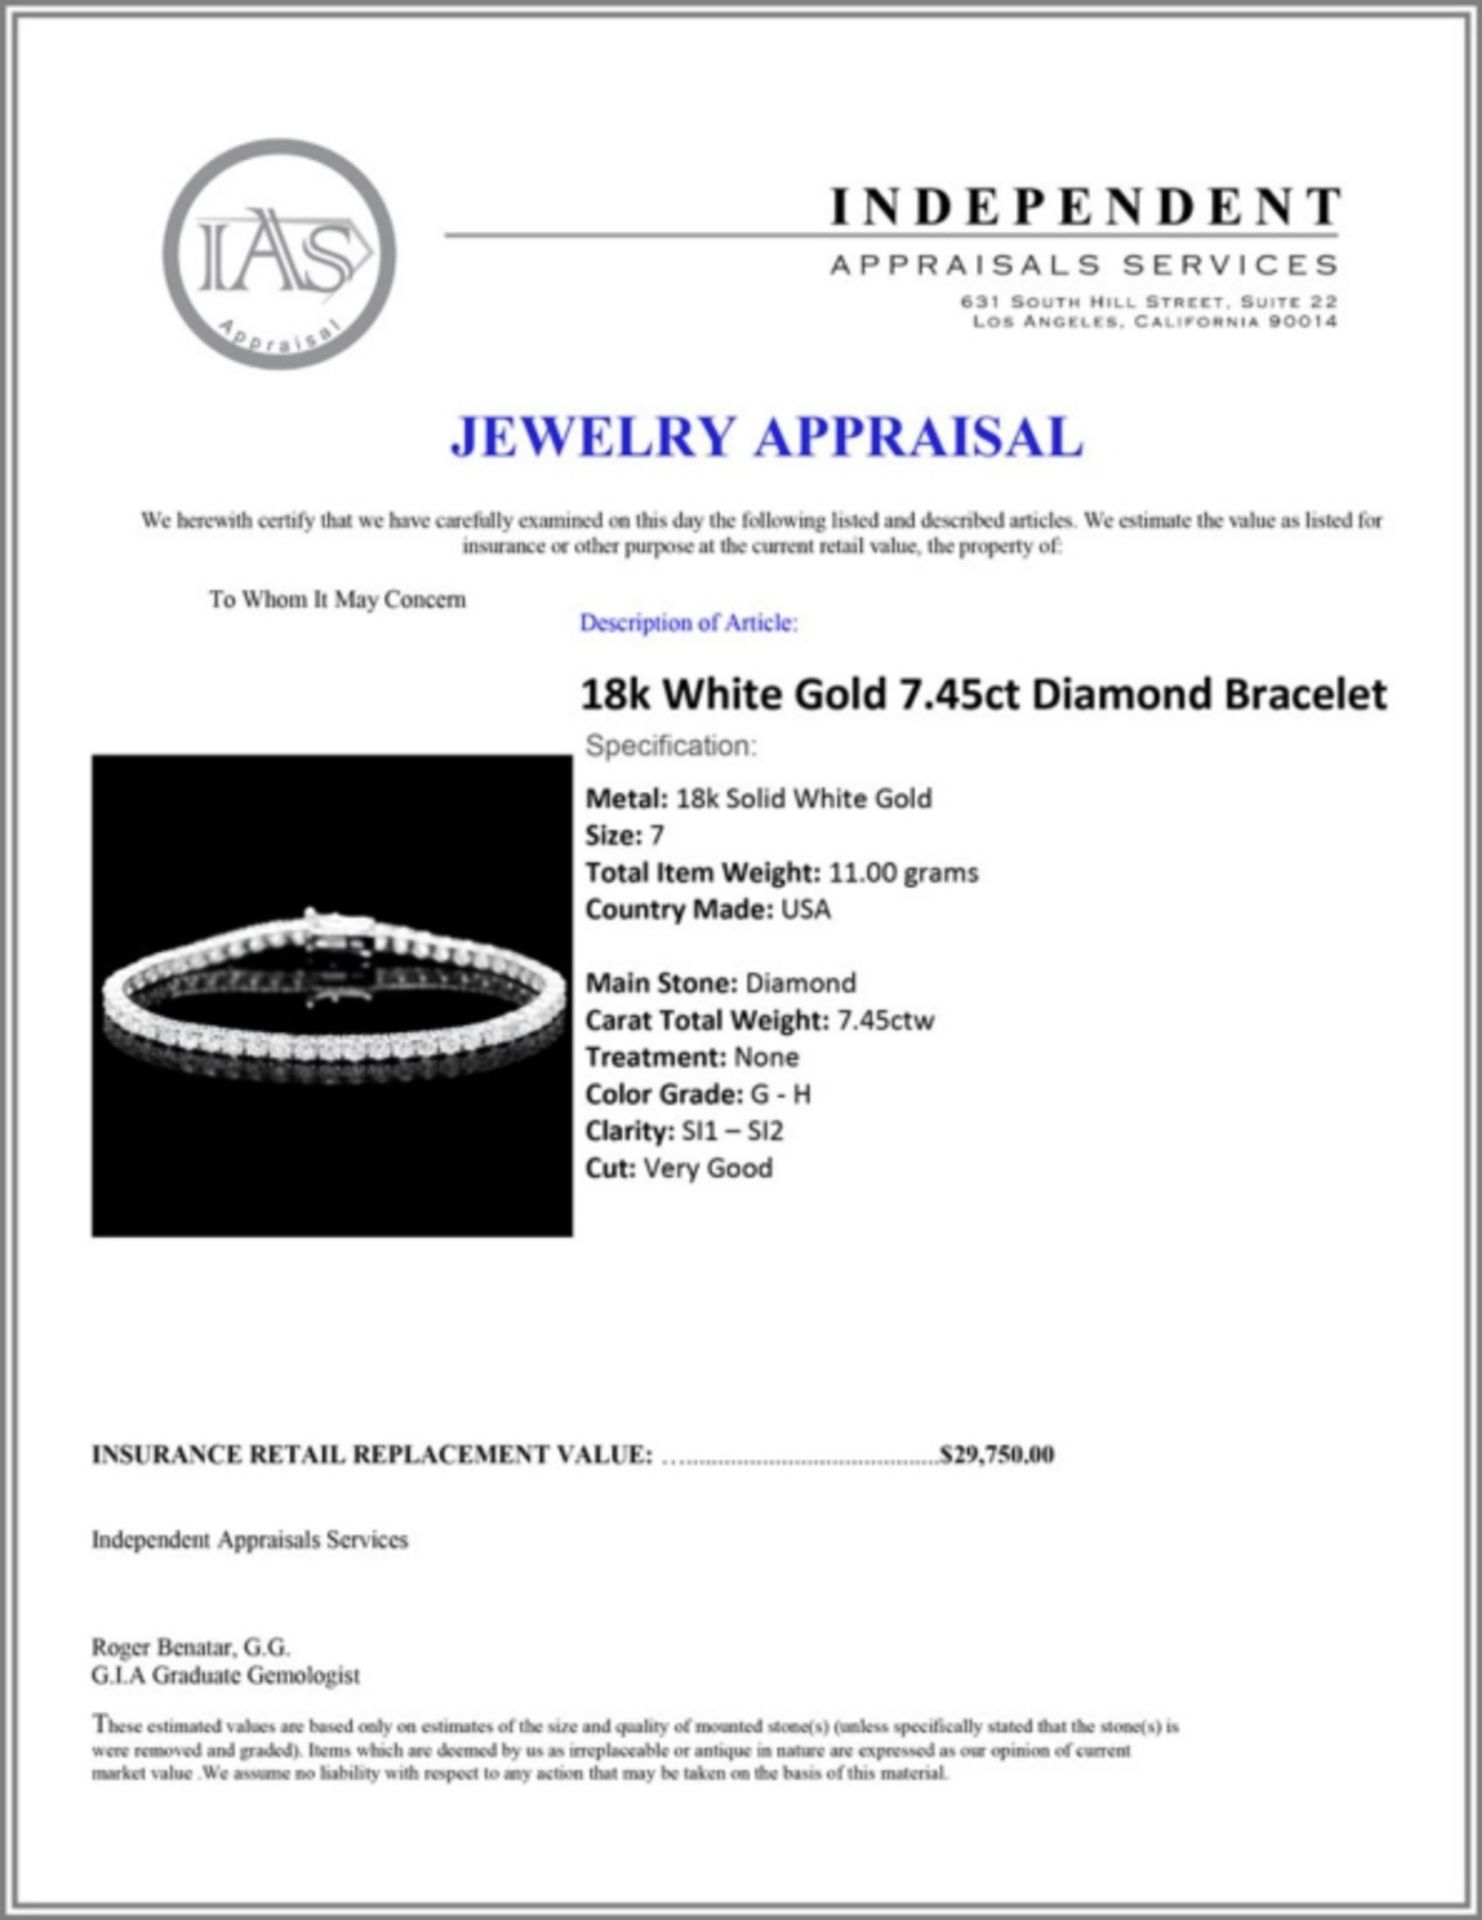 ^18k White Gold 7.45ct Diamond Bracelet - Image 3 of 3